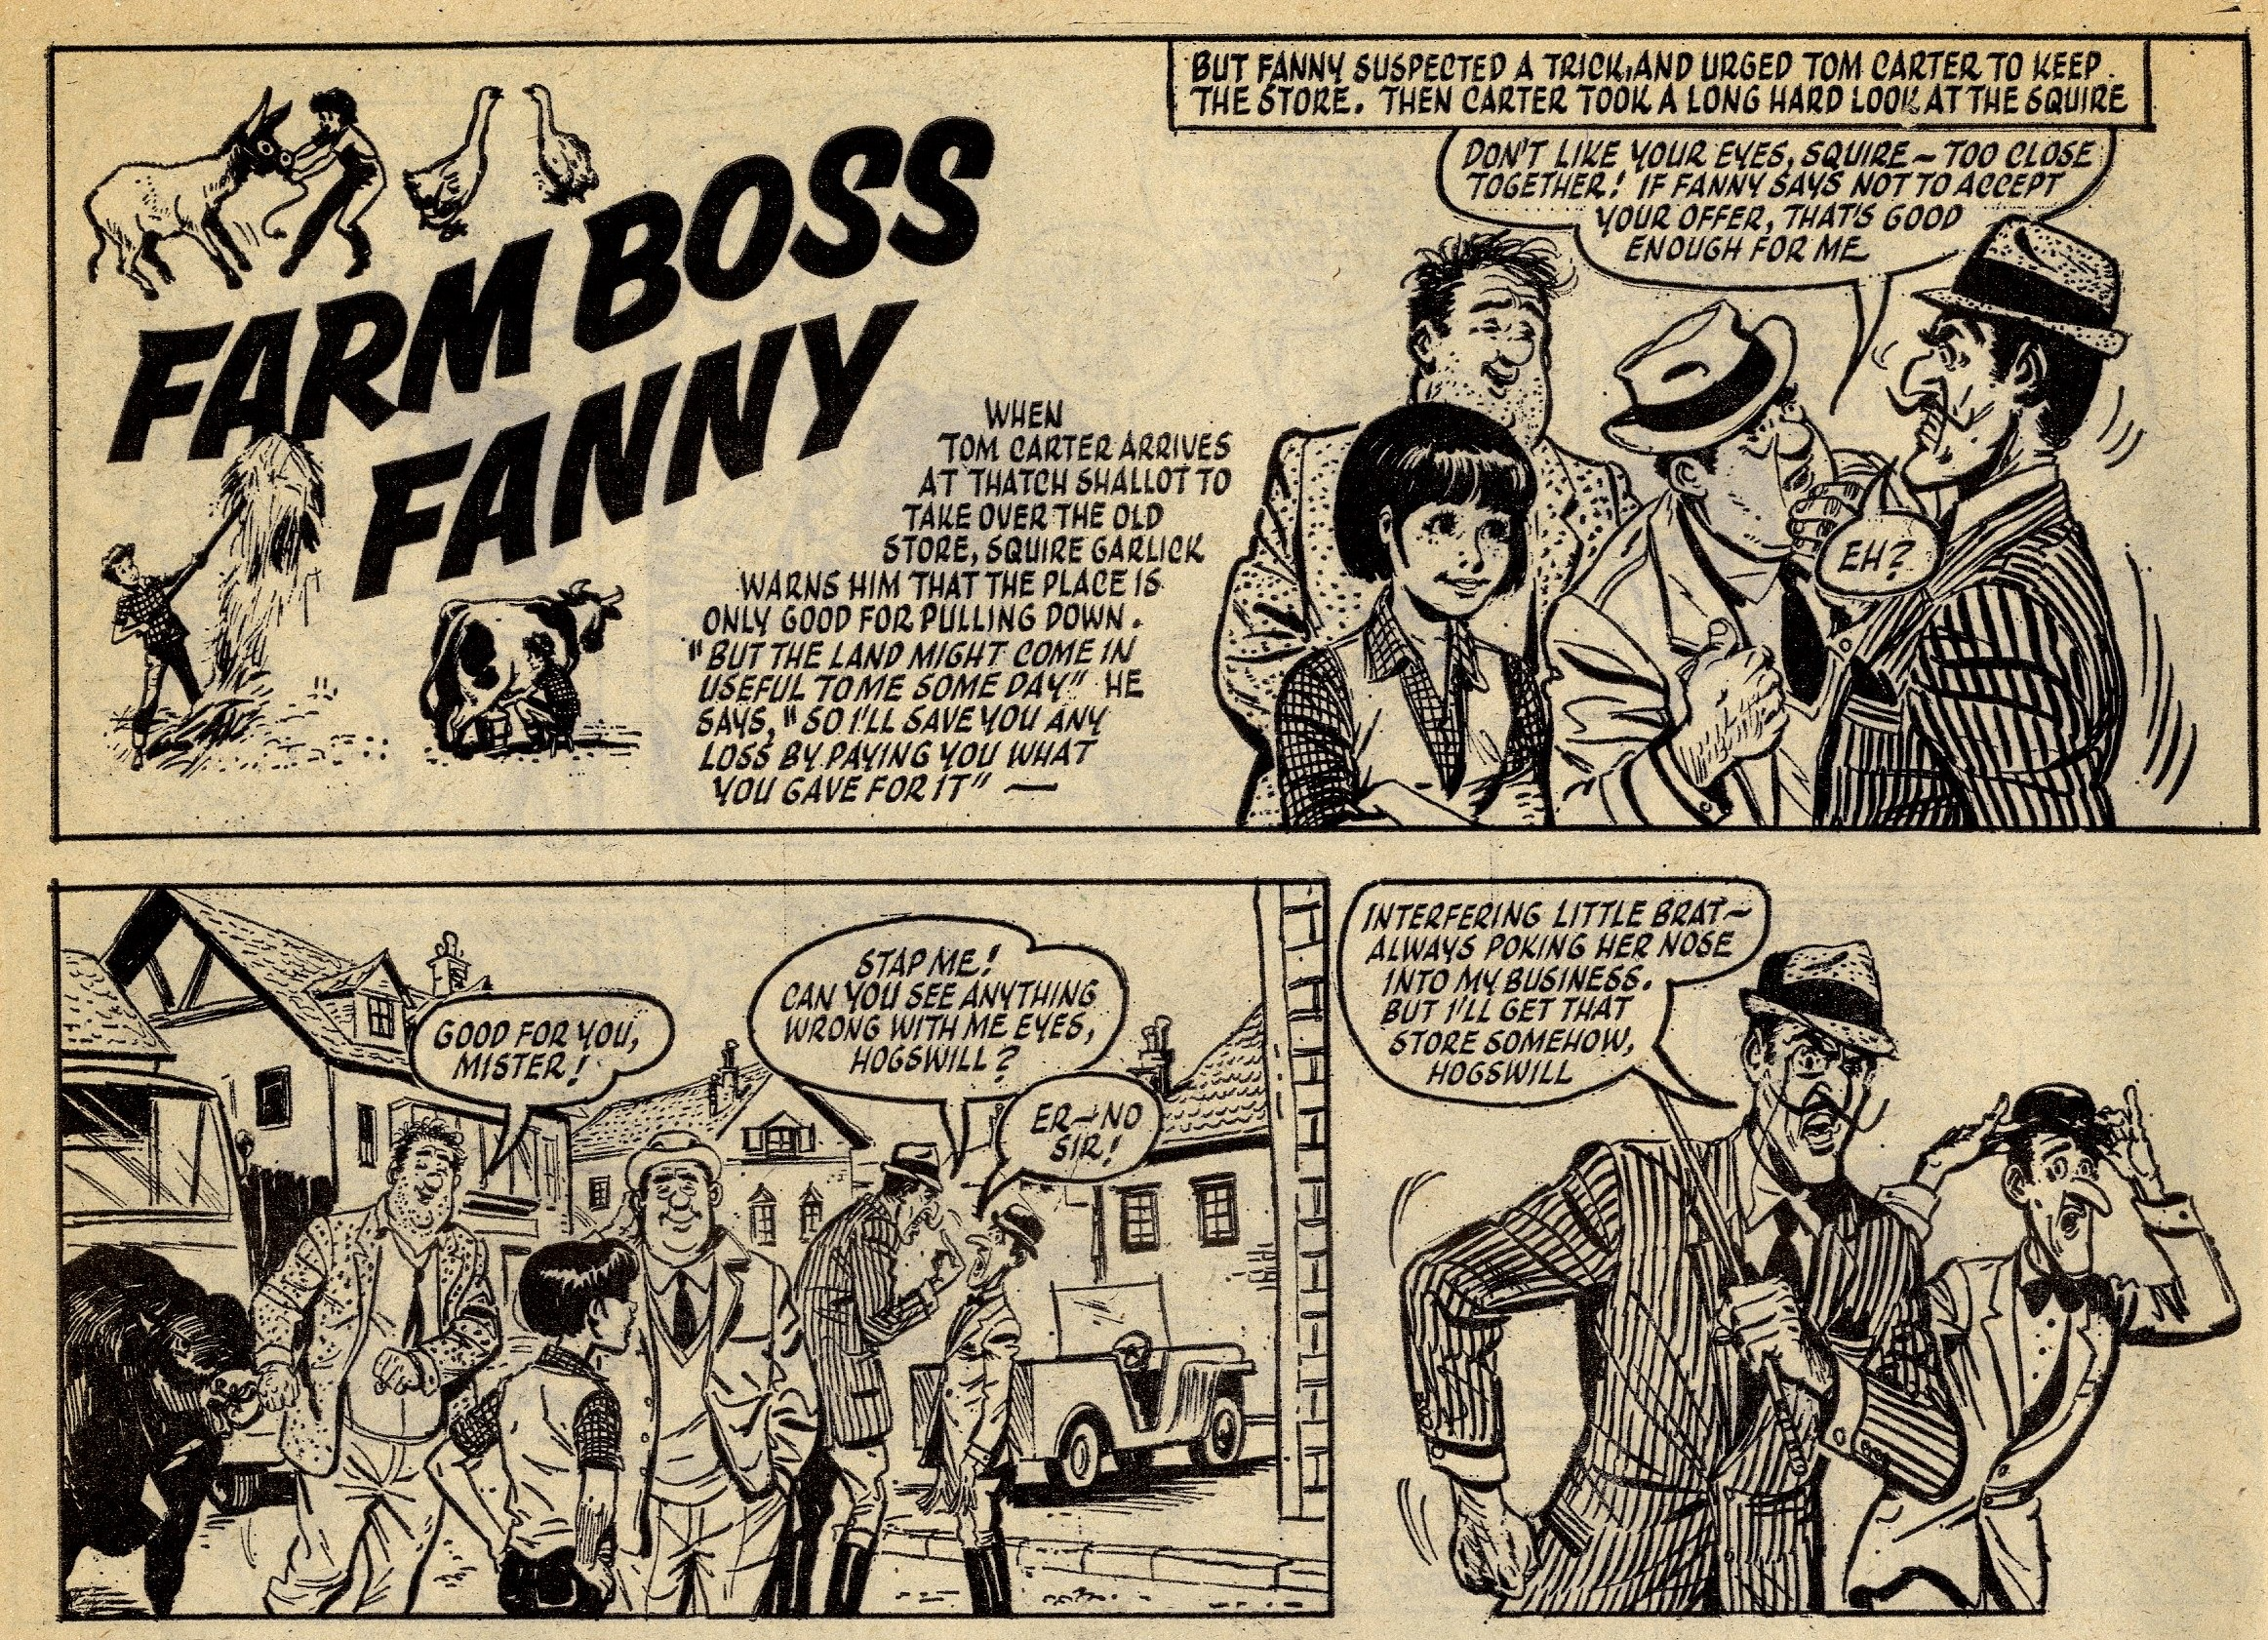 Farm Boss Fanny: artist unknown